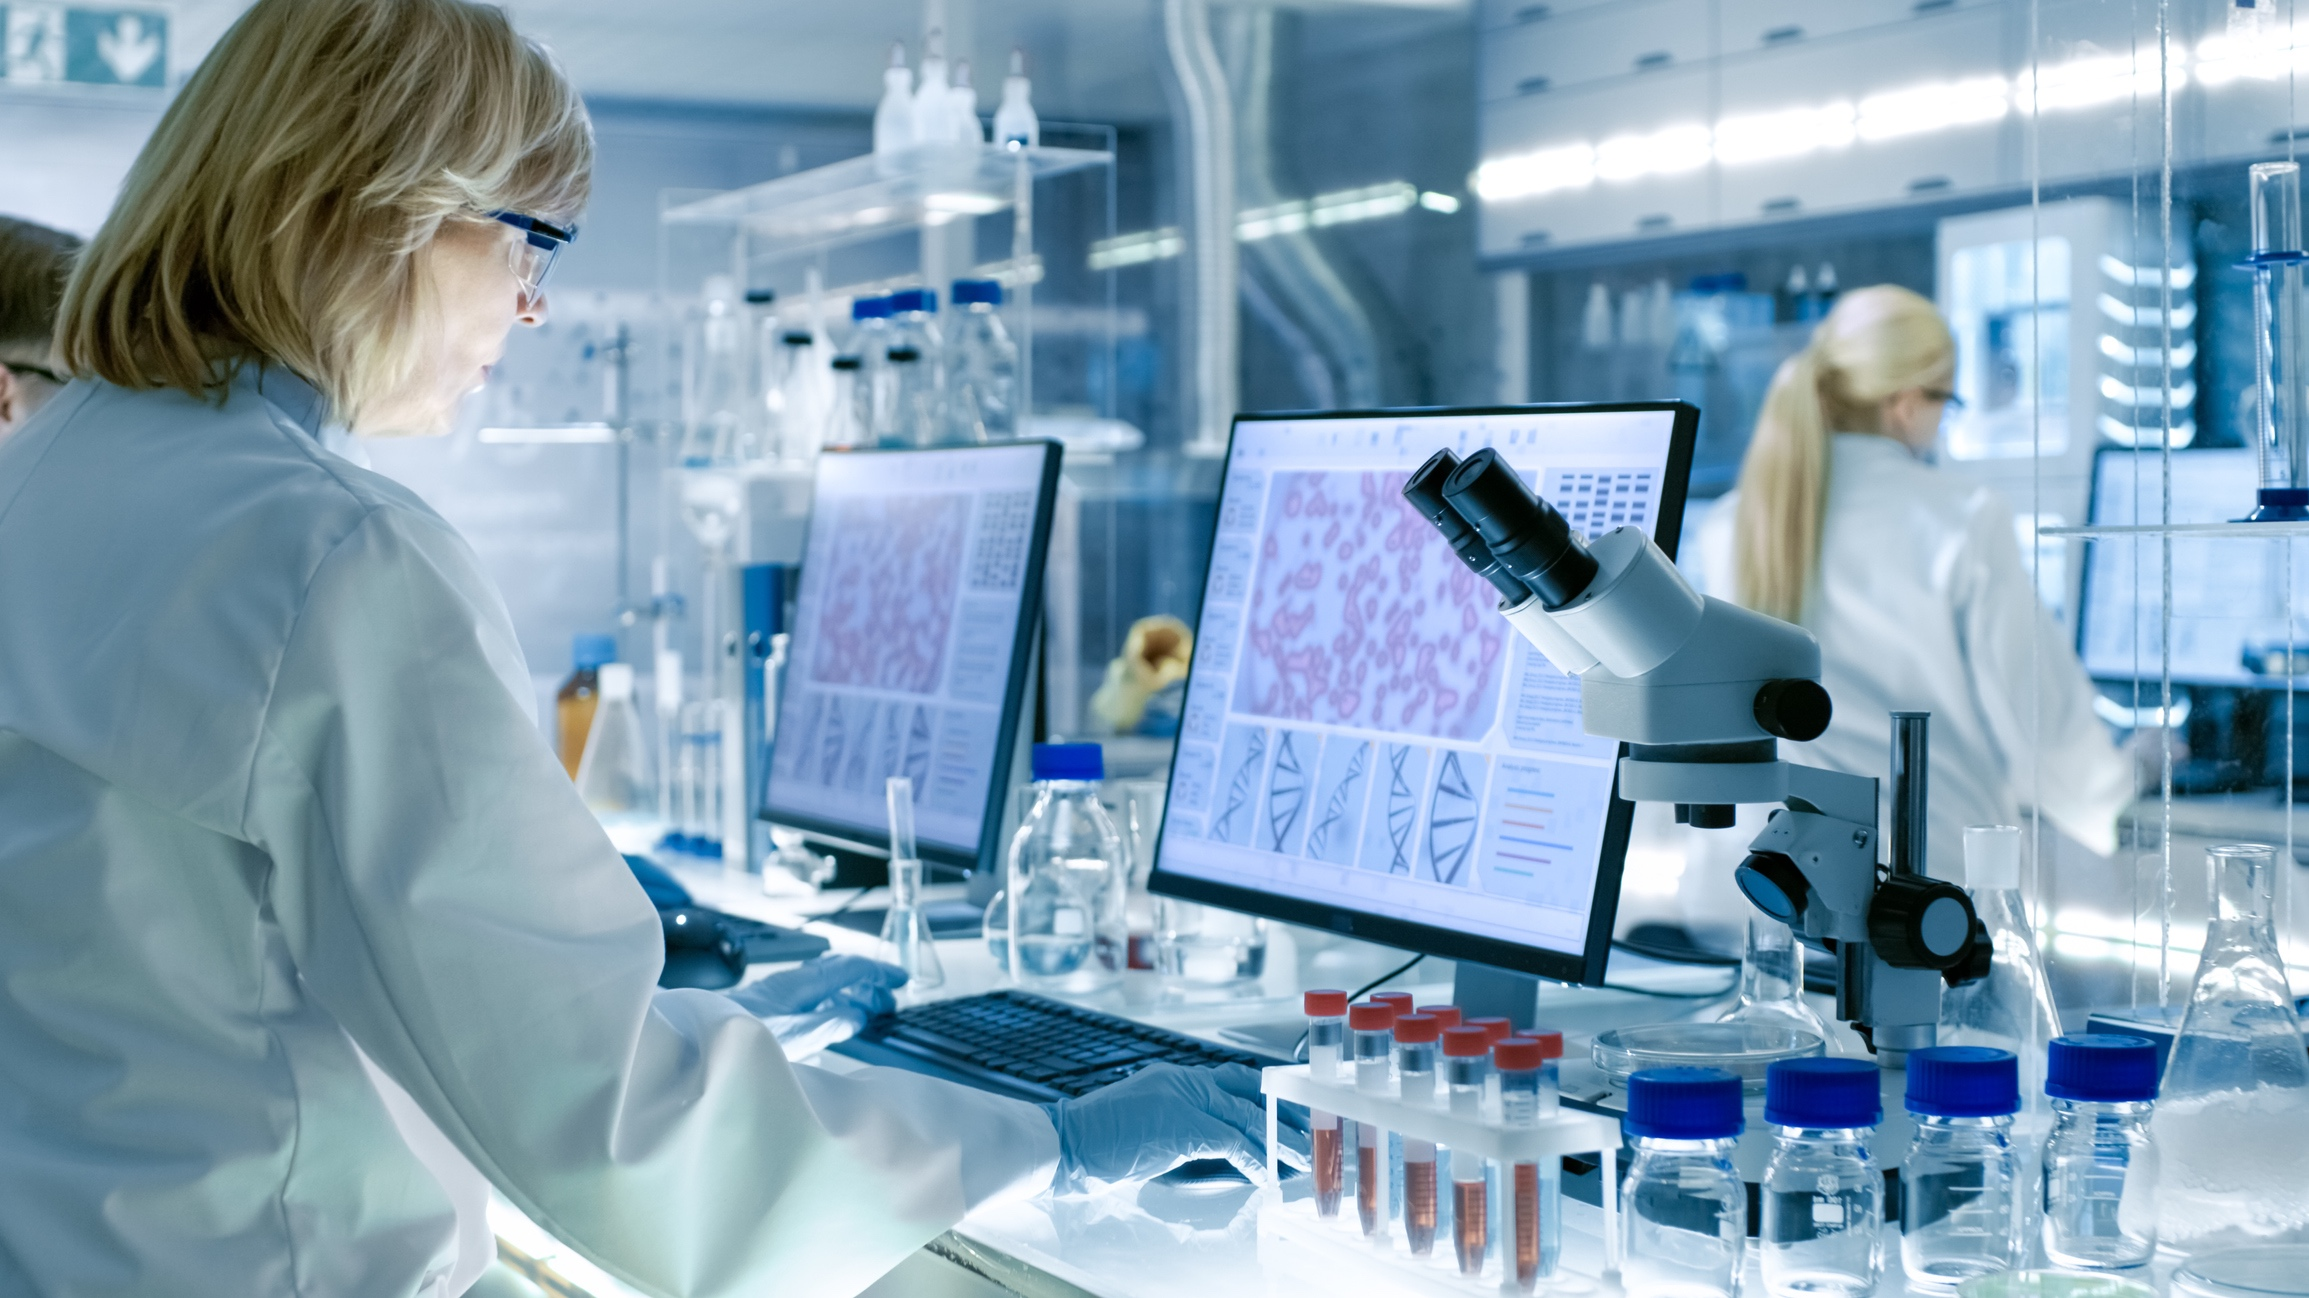 Senior-Female-Scientist-Works-with-High-Tech-Equipment-in-a-Modern-Laboratory.-Her-Colleagues-are-Working-Beside-Her.-949947192_2313x1301.jpg